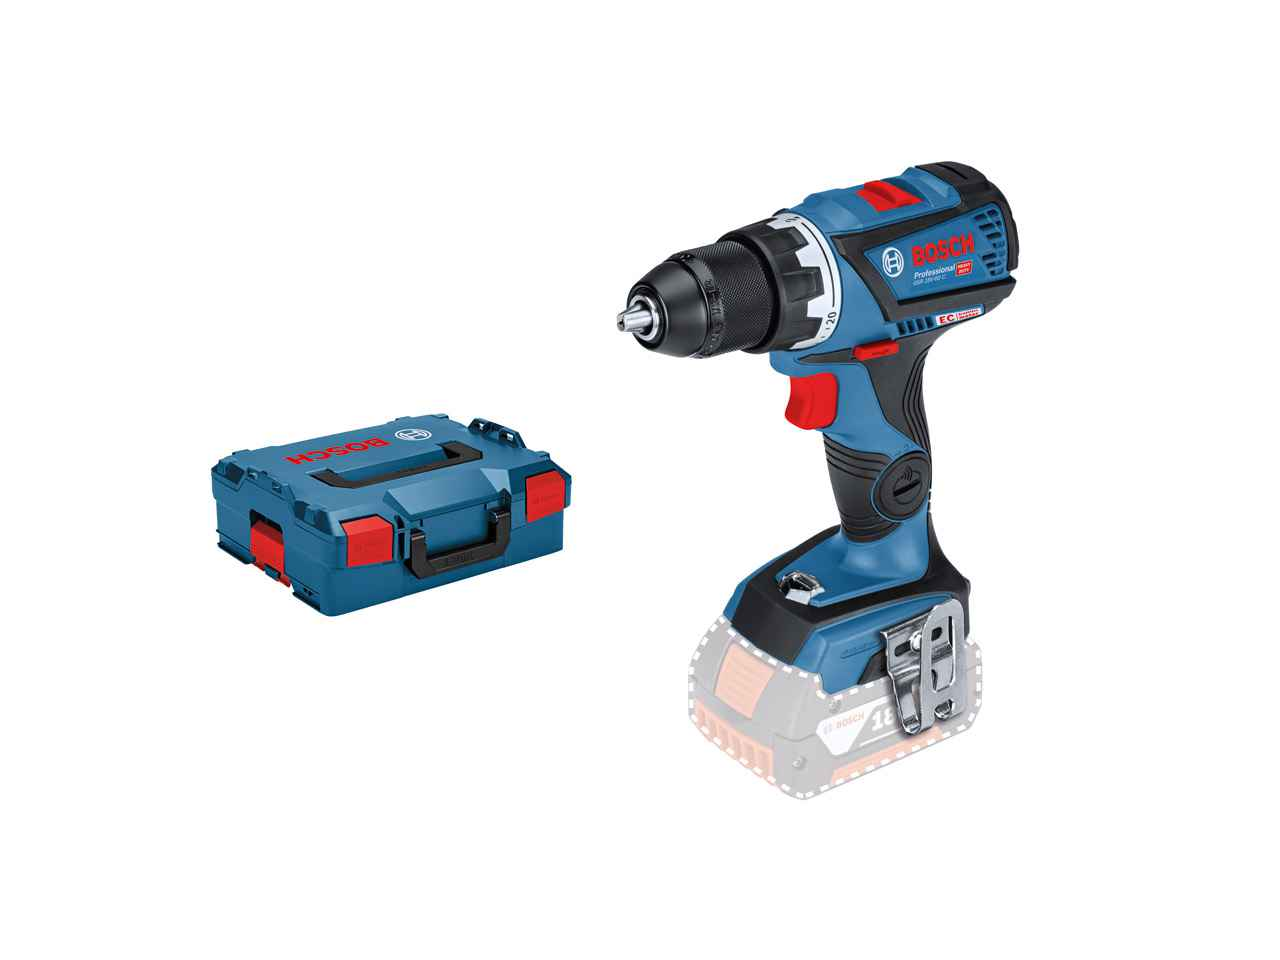 bosch 06019g1103 18v professional cordless drill driver. Black Bedroom Furniture Sets. Home Design Ideas